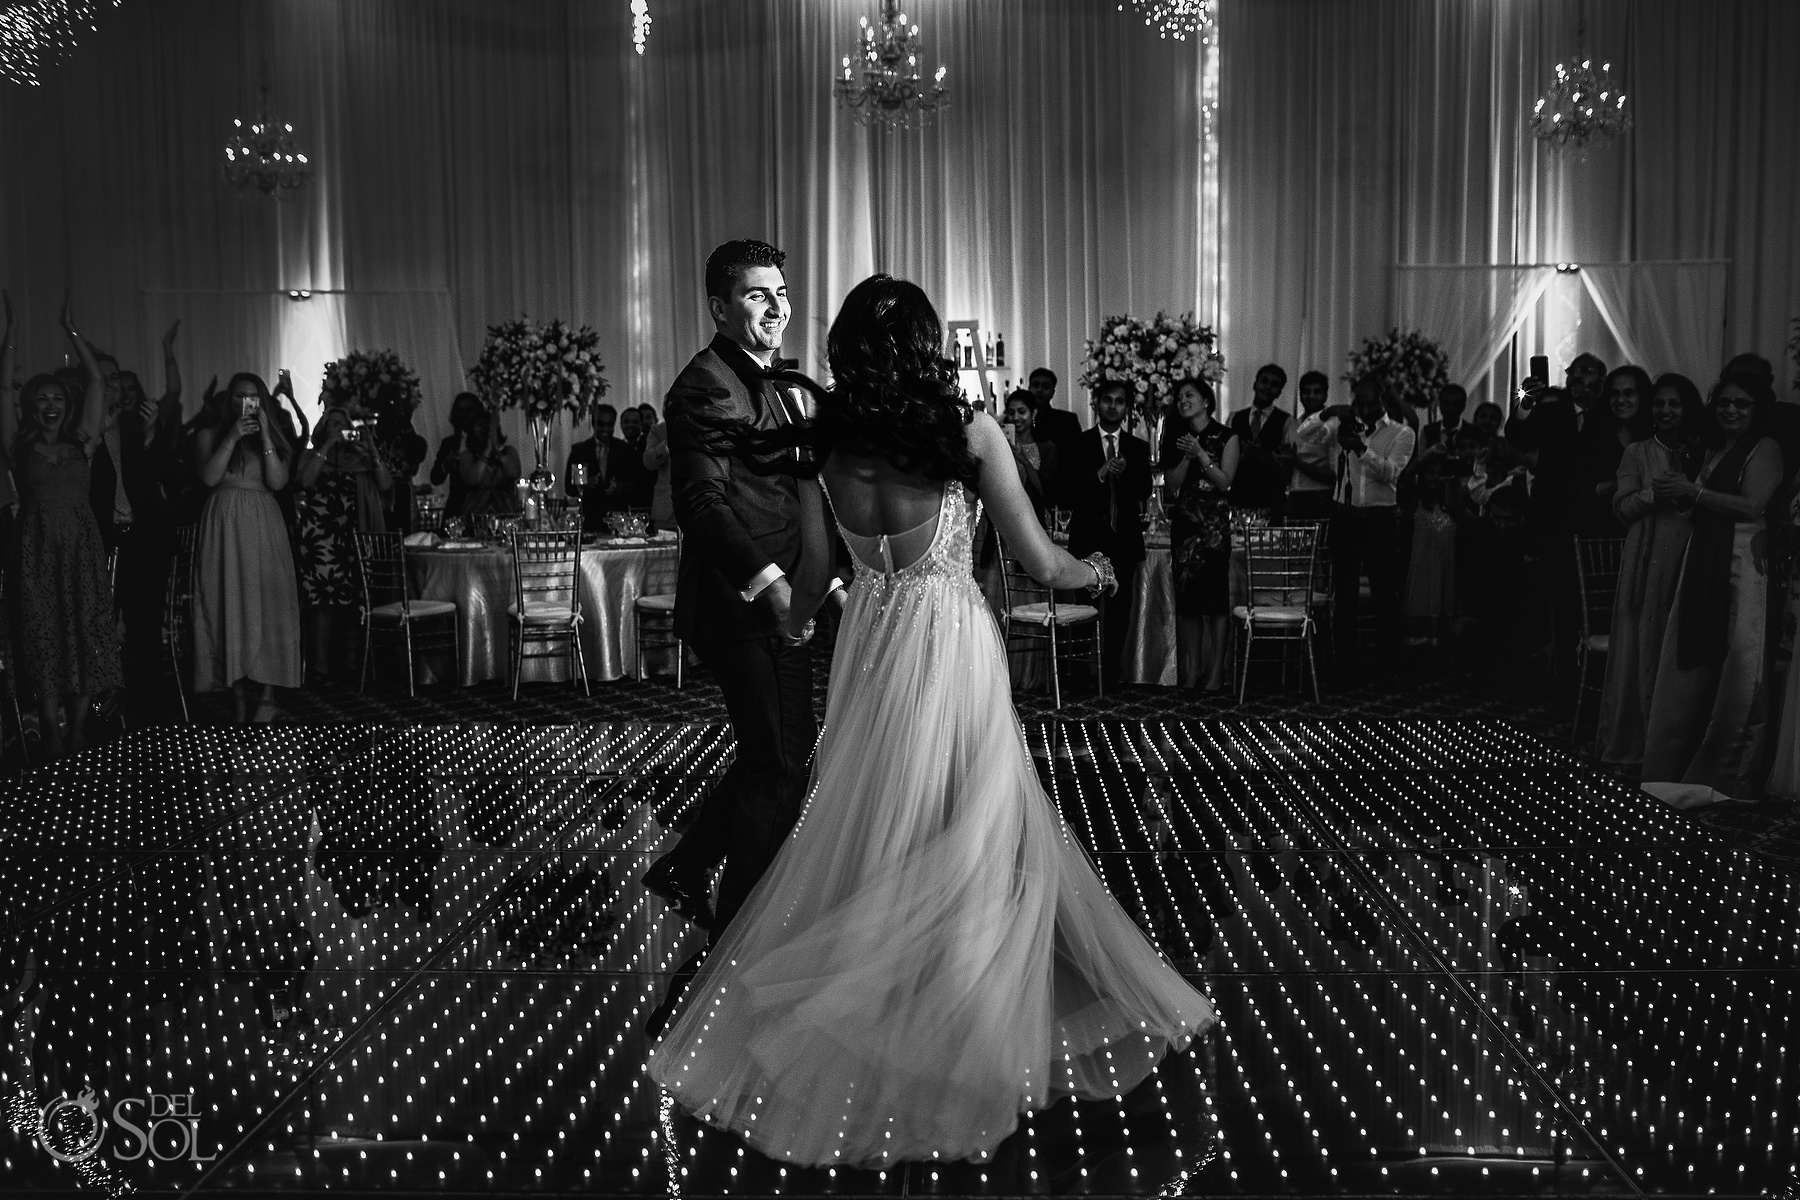 Black and White Bride and Groom First Dance Ballroom Tulum Jewish Wedding Reception